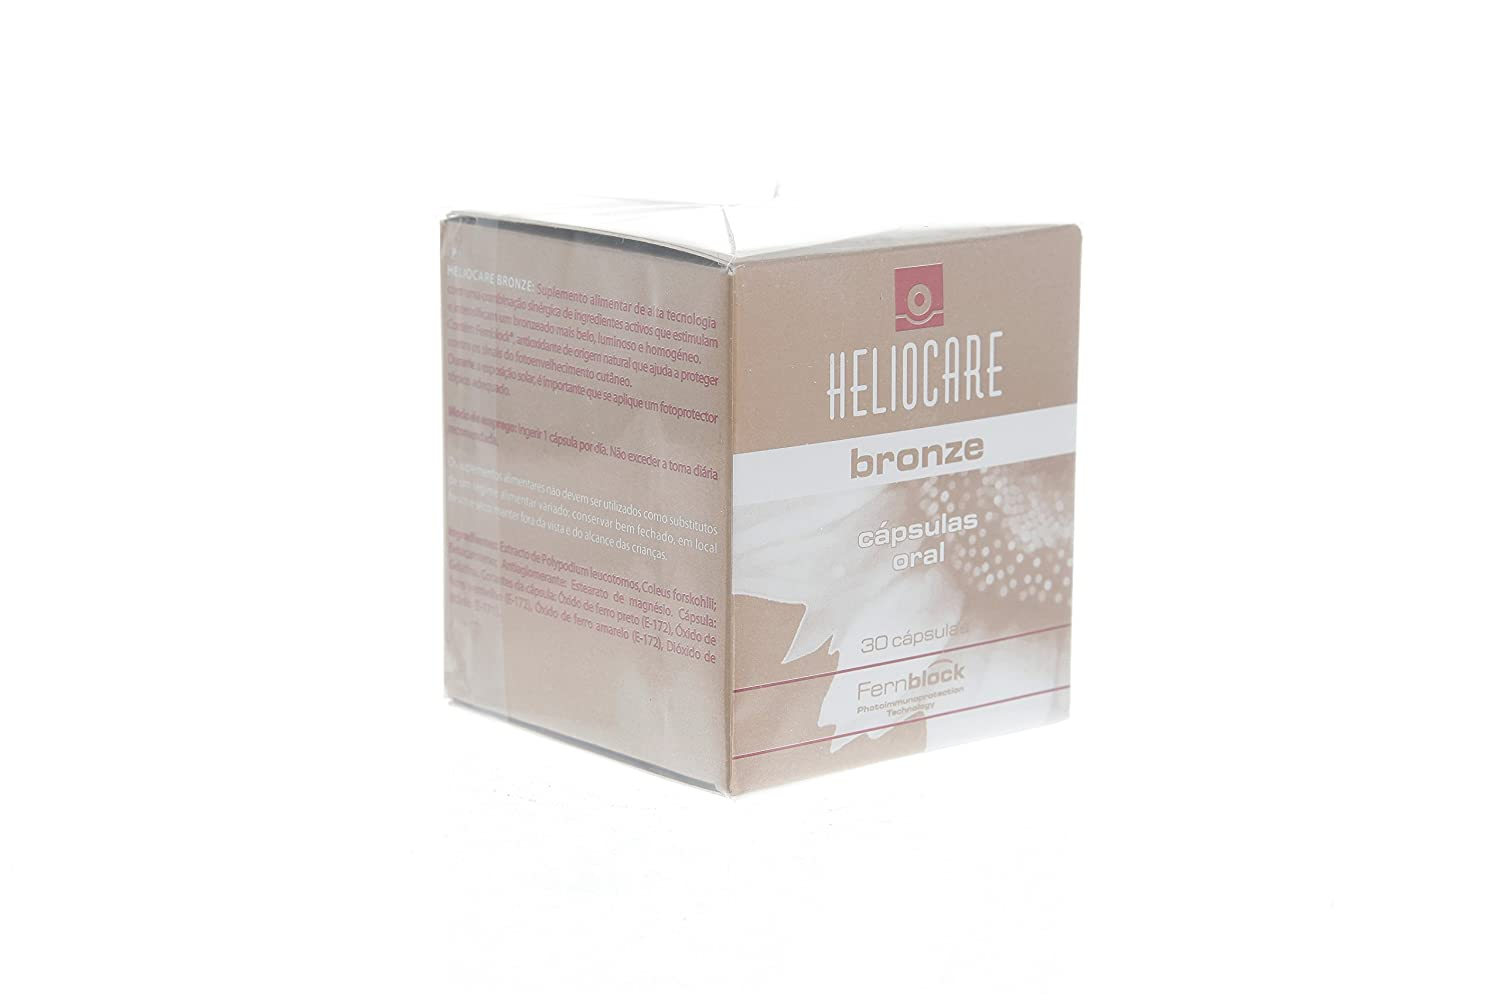 Amazon.com : Heliocare Bronze Capsules (30 Caps) : Sunscreens And Tanning Products : Beauty